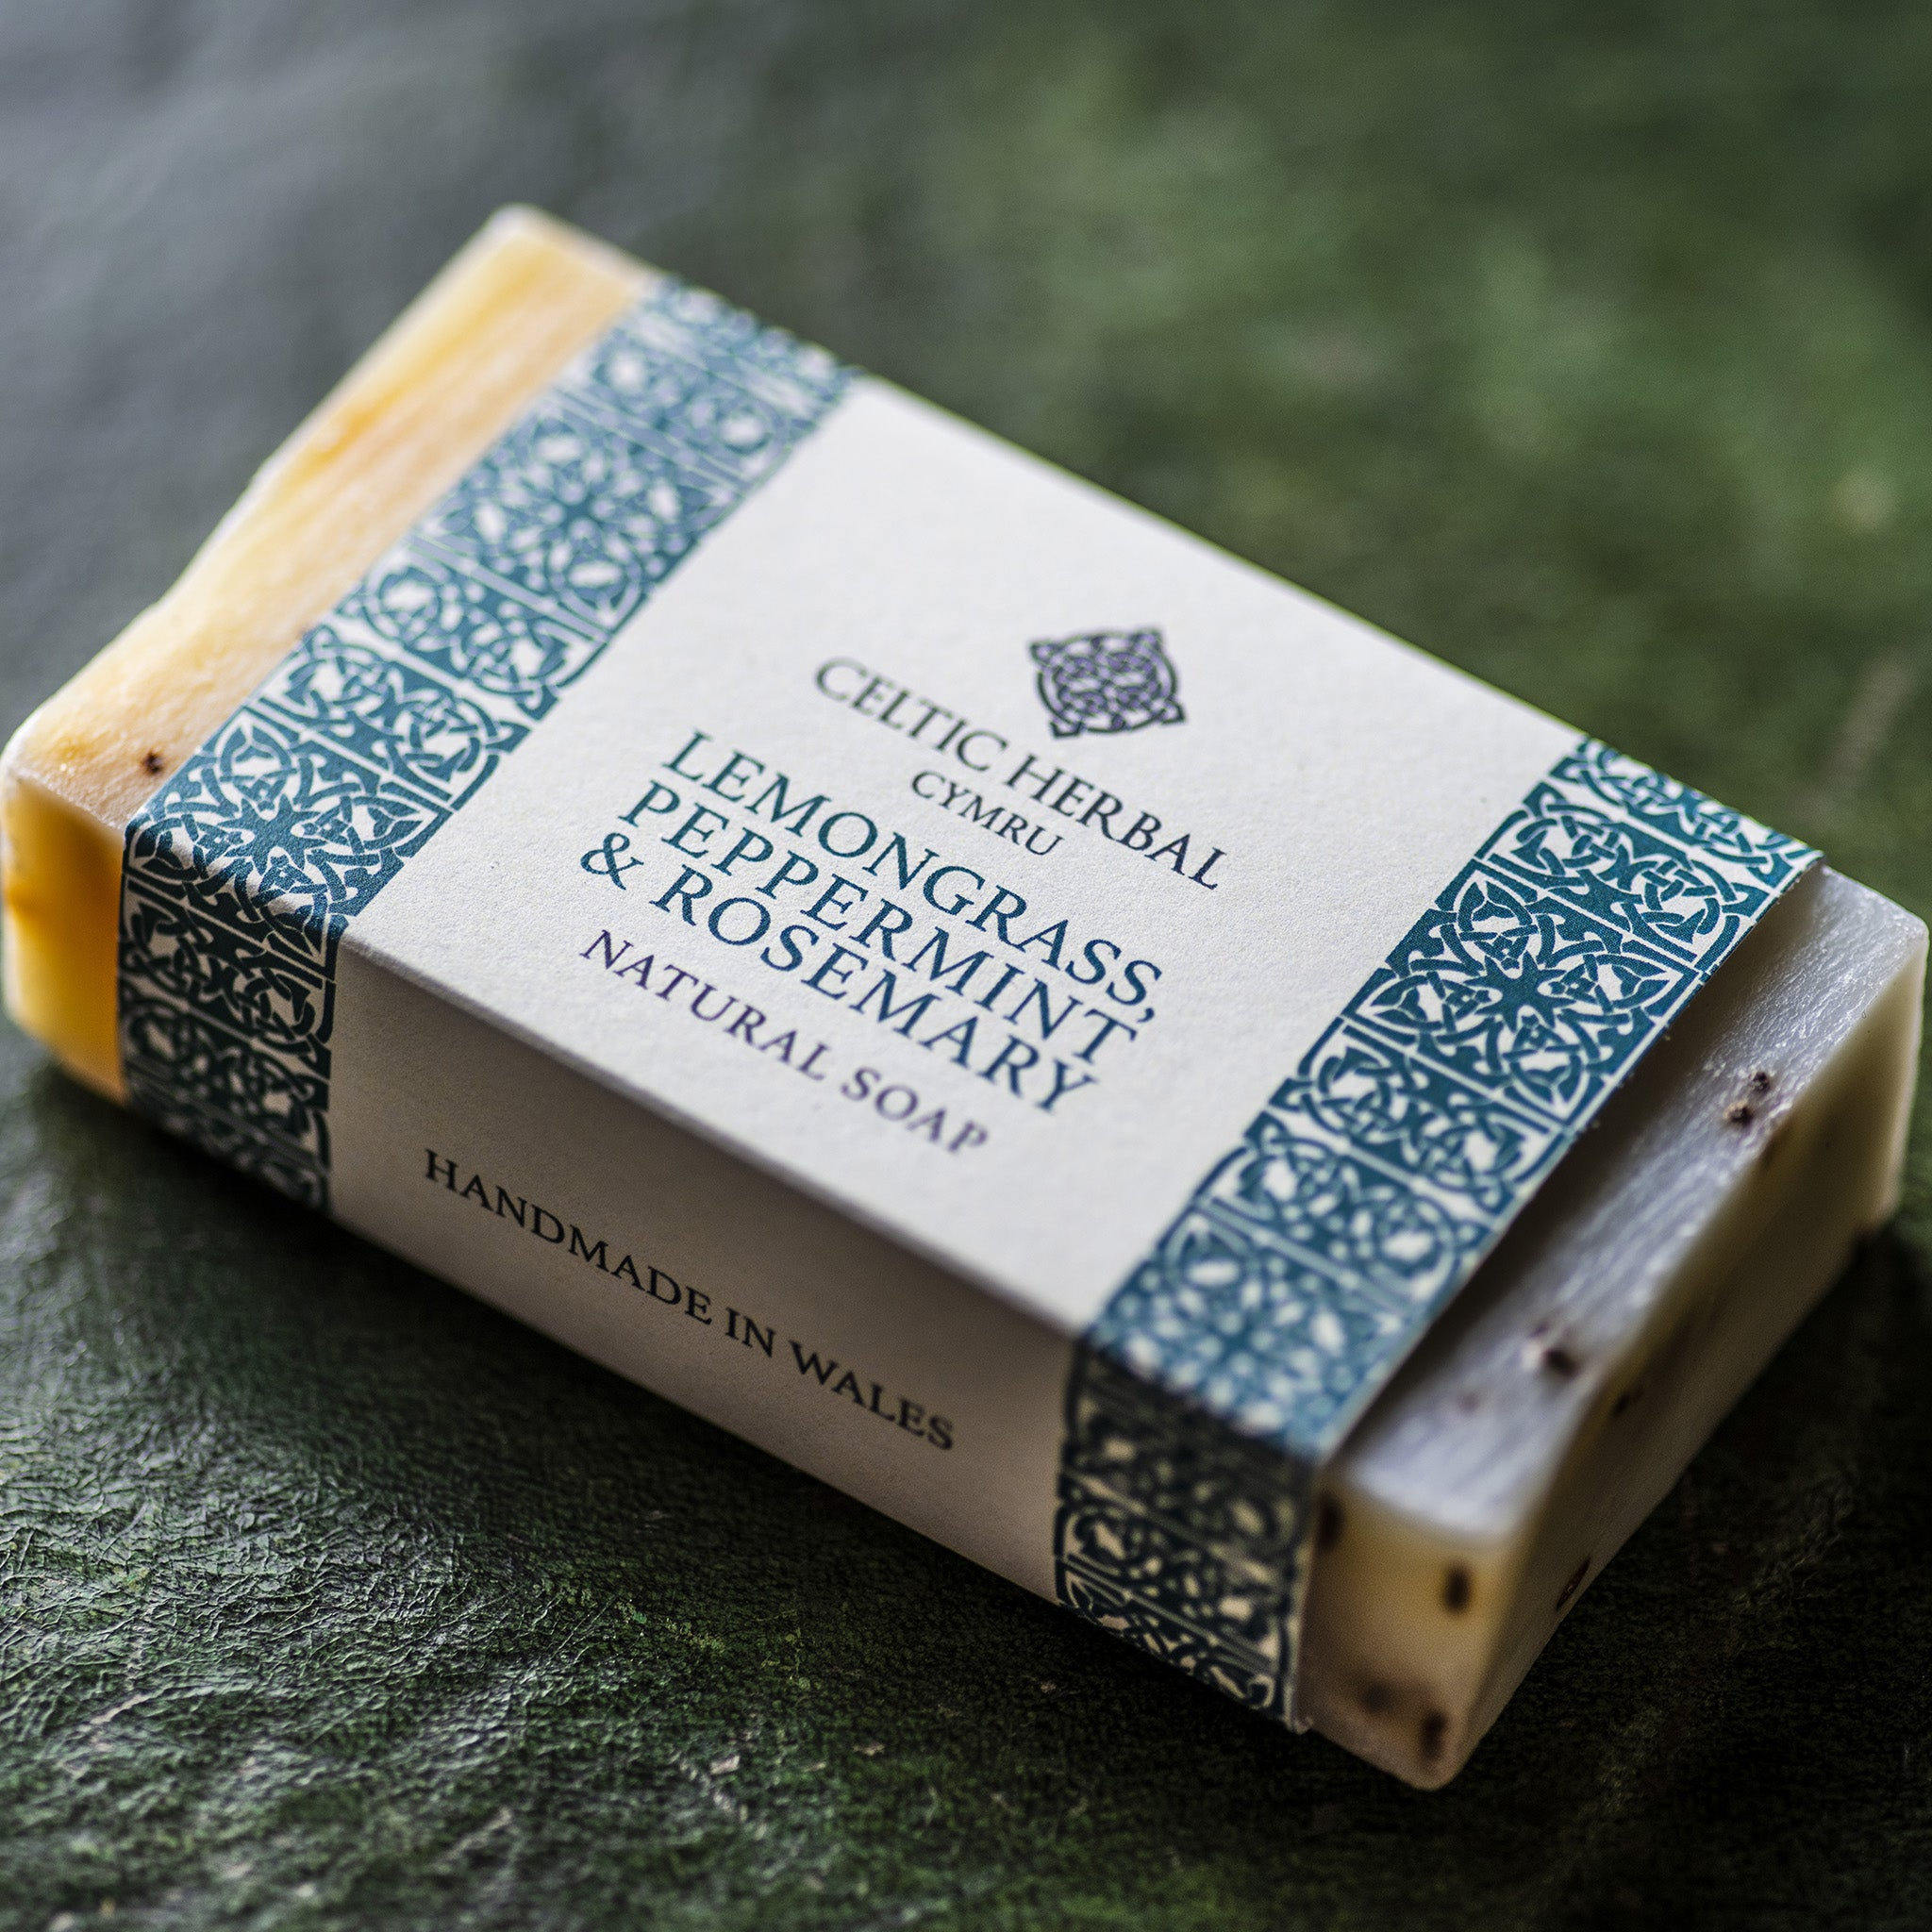 Lemongrass, Peppermint & Rosemary Soap